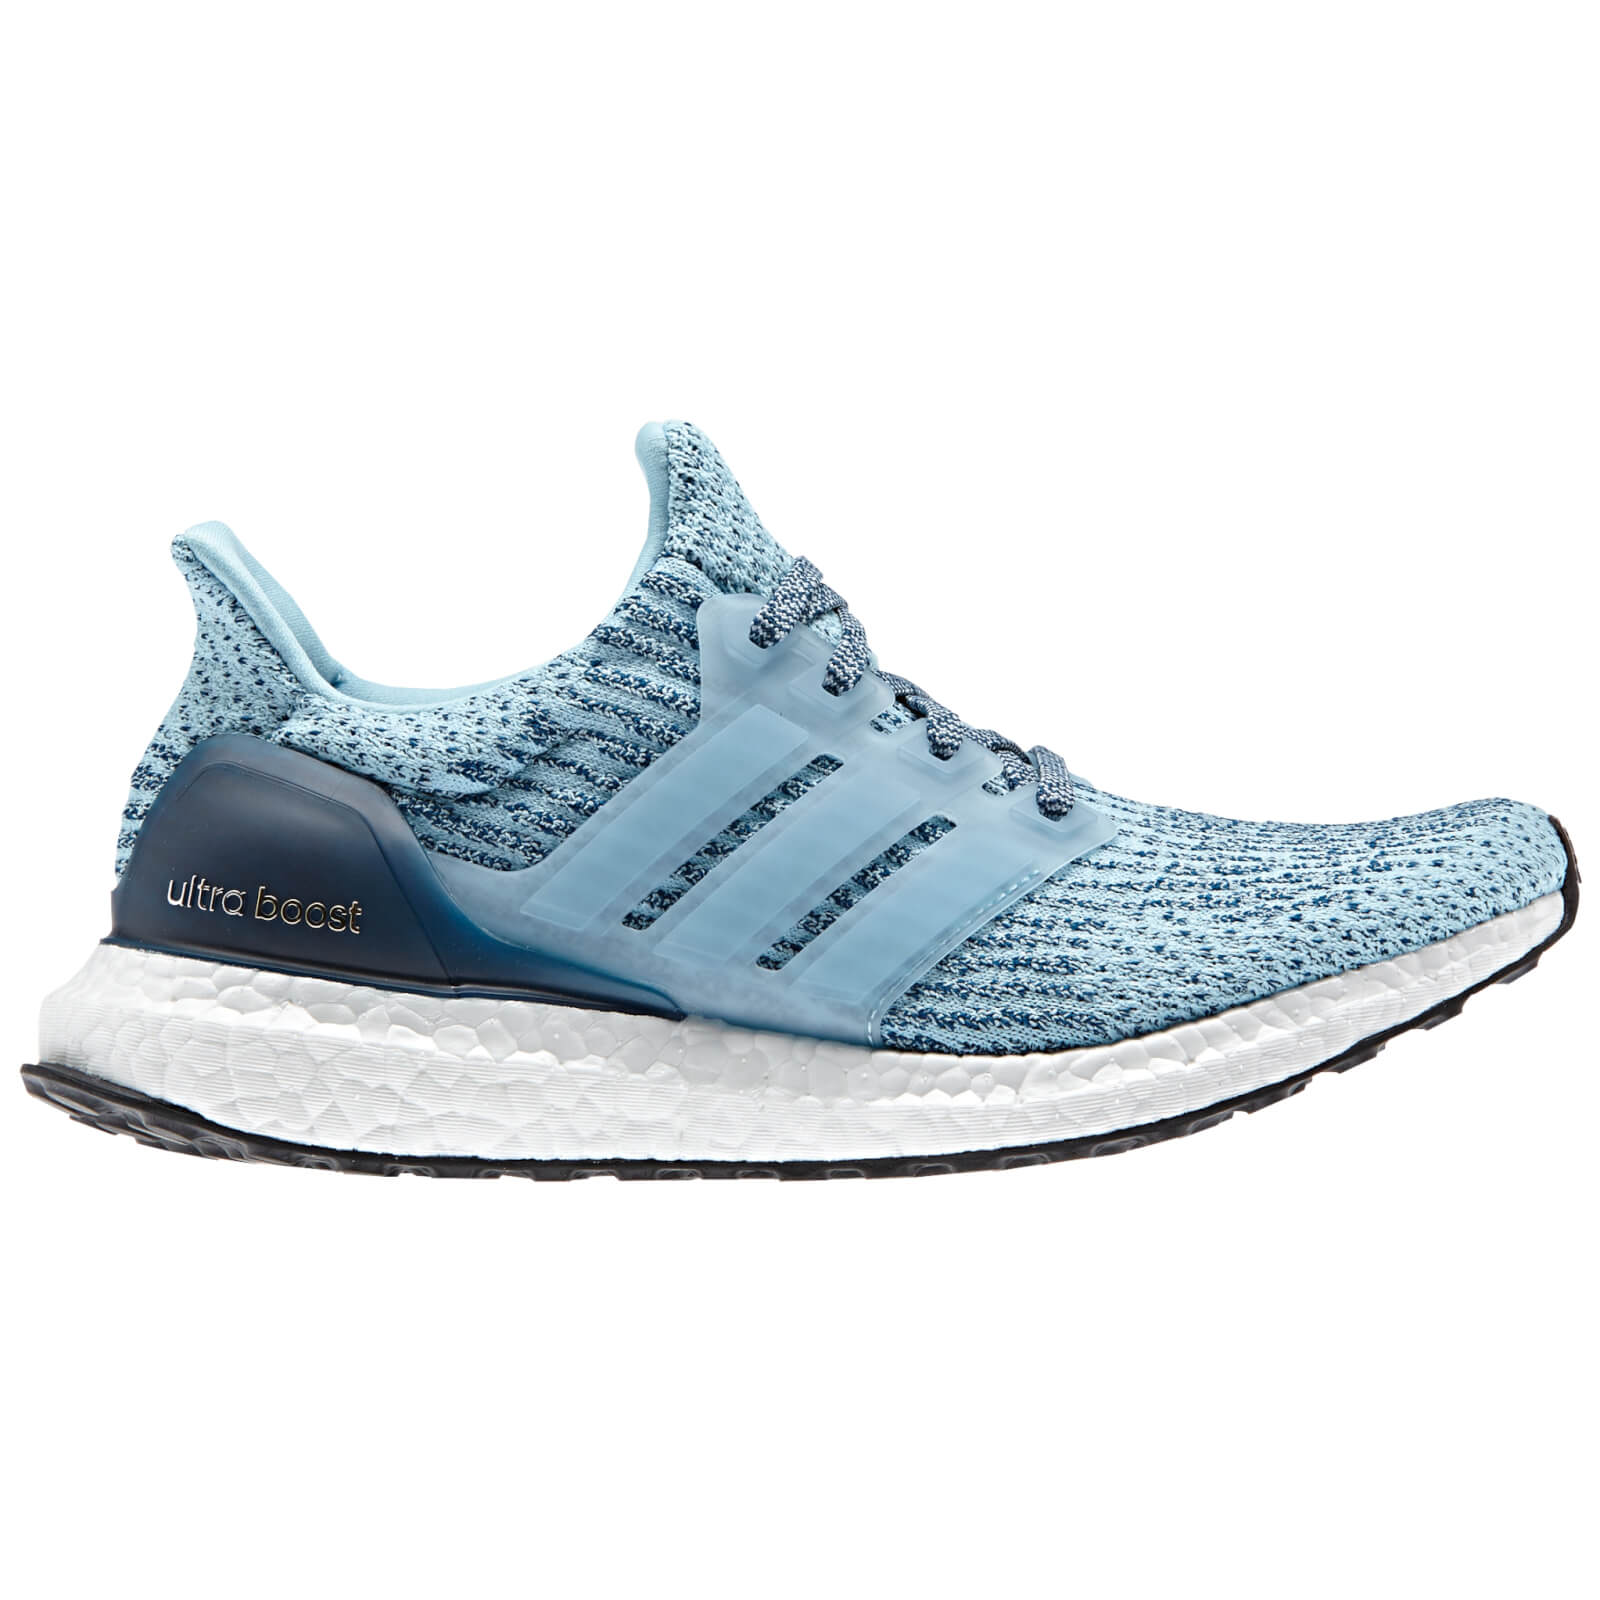 adidas Women's Ultra Boost Running Shoes in blue and grey